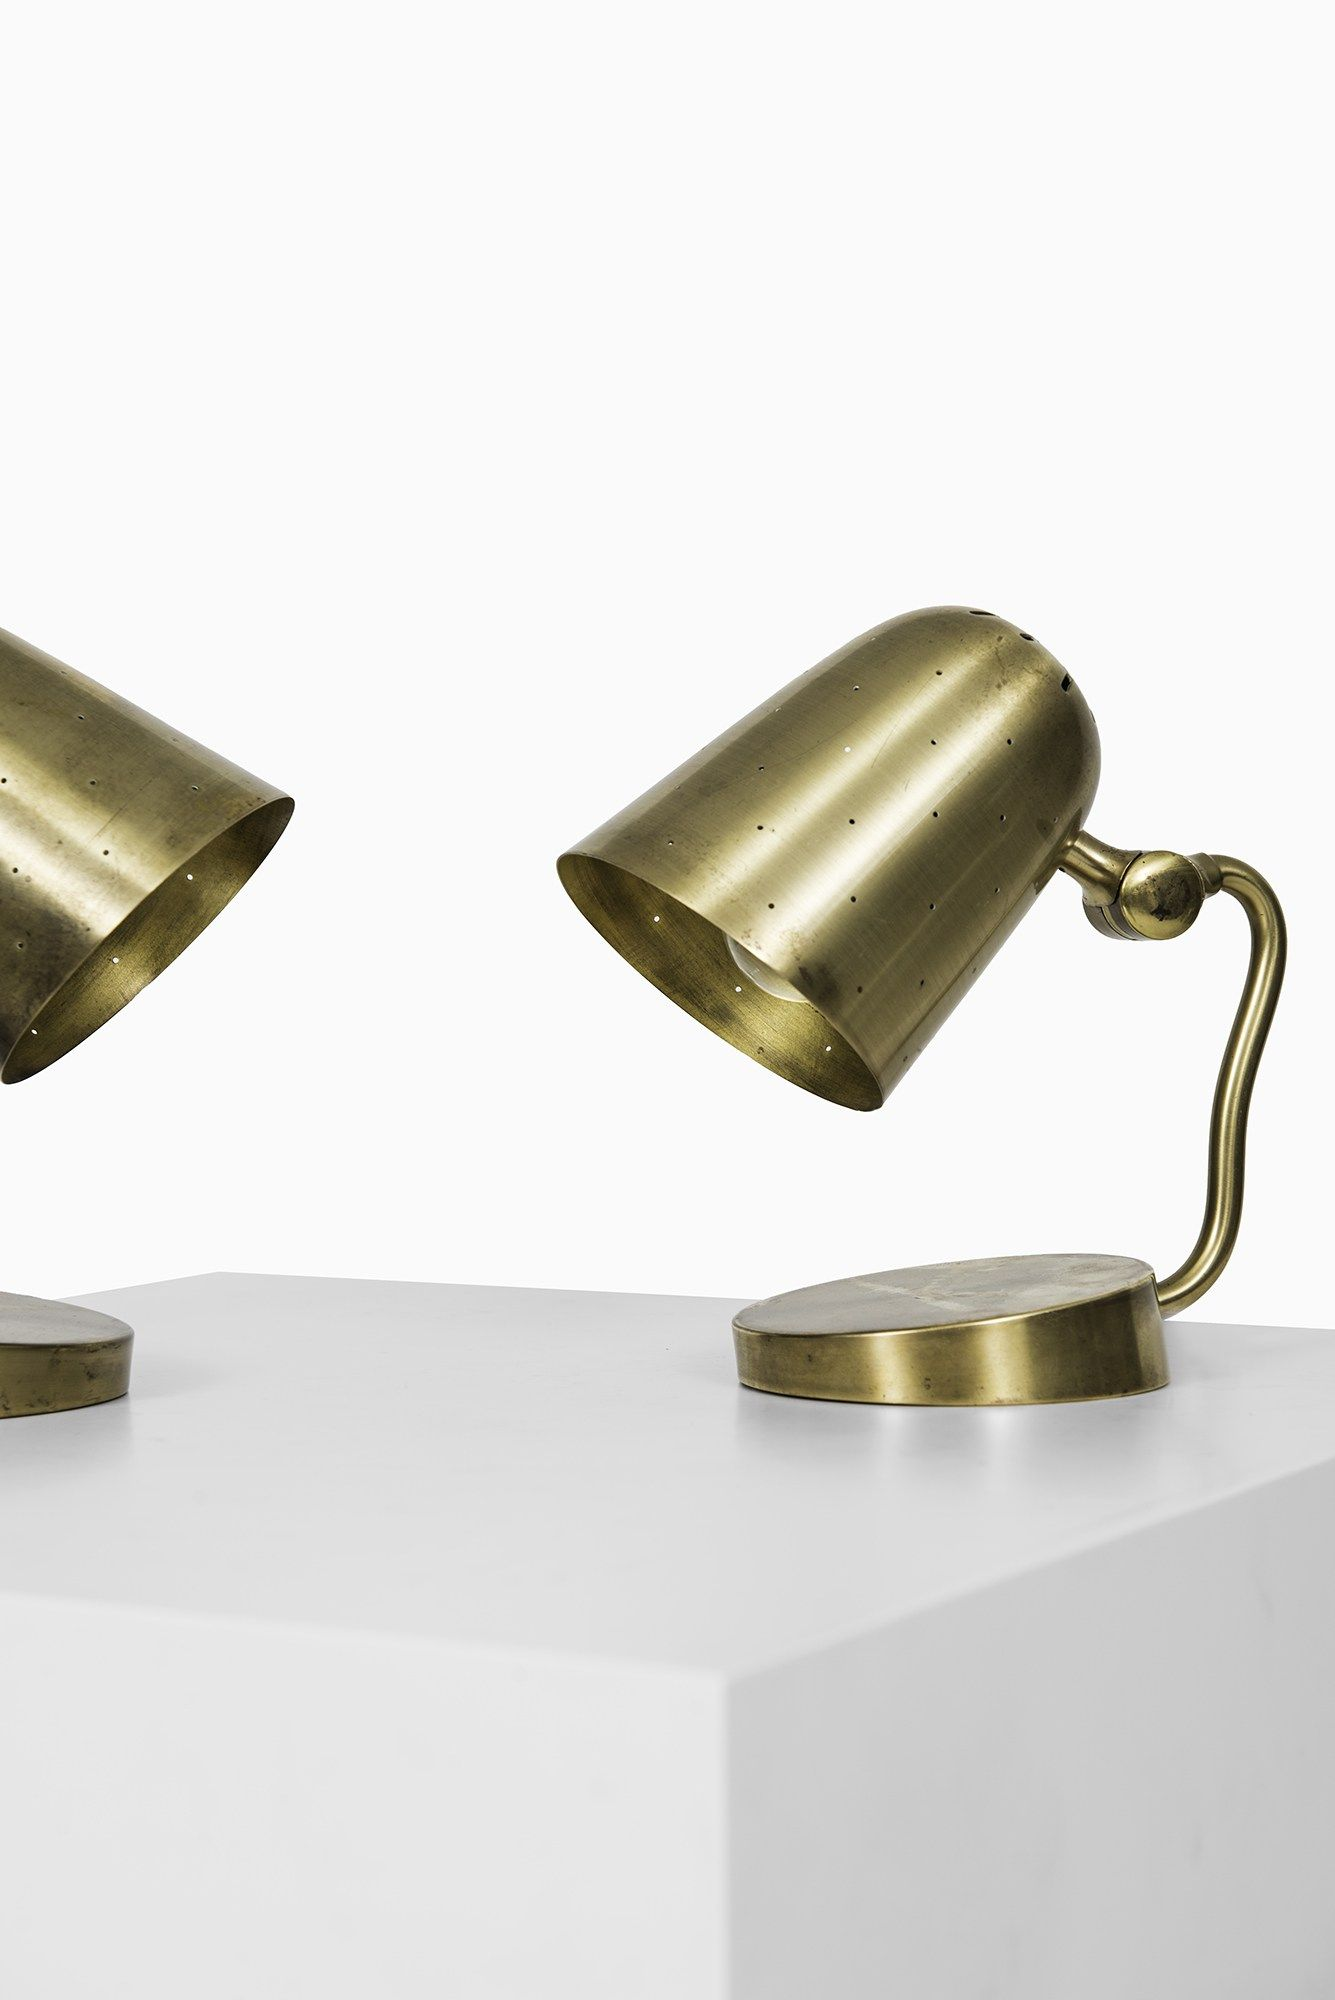 Rare pair of table / wall lamps in brass at Studio Schalling